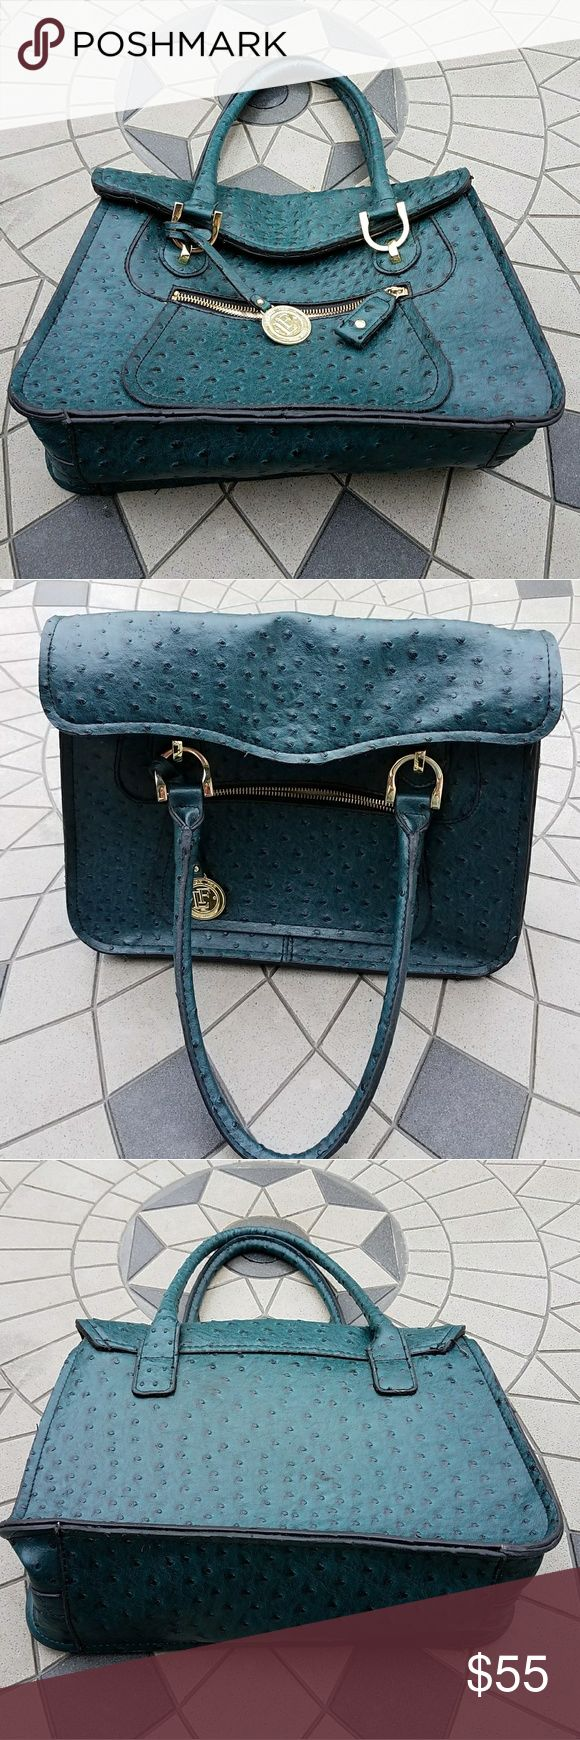 """London Fog: Emerald Green Pebbled Leather Handbag NWOT: Deep, emerald green pebbled leather handbag with gold tone accent hardware. The exterior has the logo hanging emblem, a zippered satin lined slip pocket with flap magnetic snap closure, and durable loop handles. The satin lined interior has a divided zippered compartment with the back side having a zippered and slip pockets, and the front side has two slip pockets. Excellent condition with no stains or tears.  Approx. Dims: 14.5"""" x 5"""" x…"""